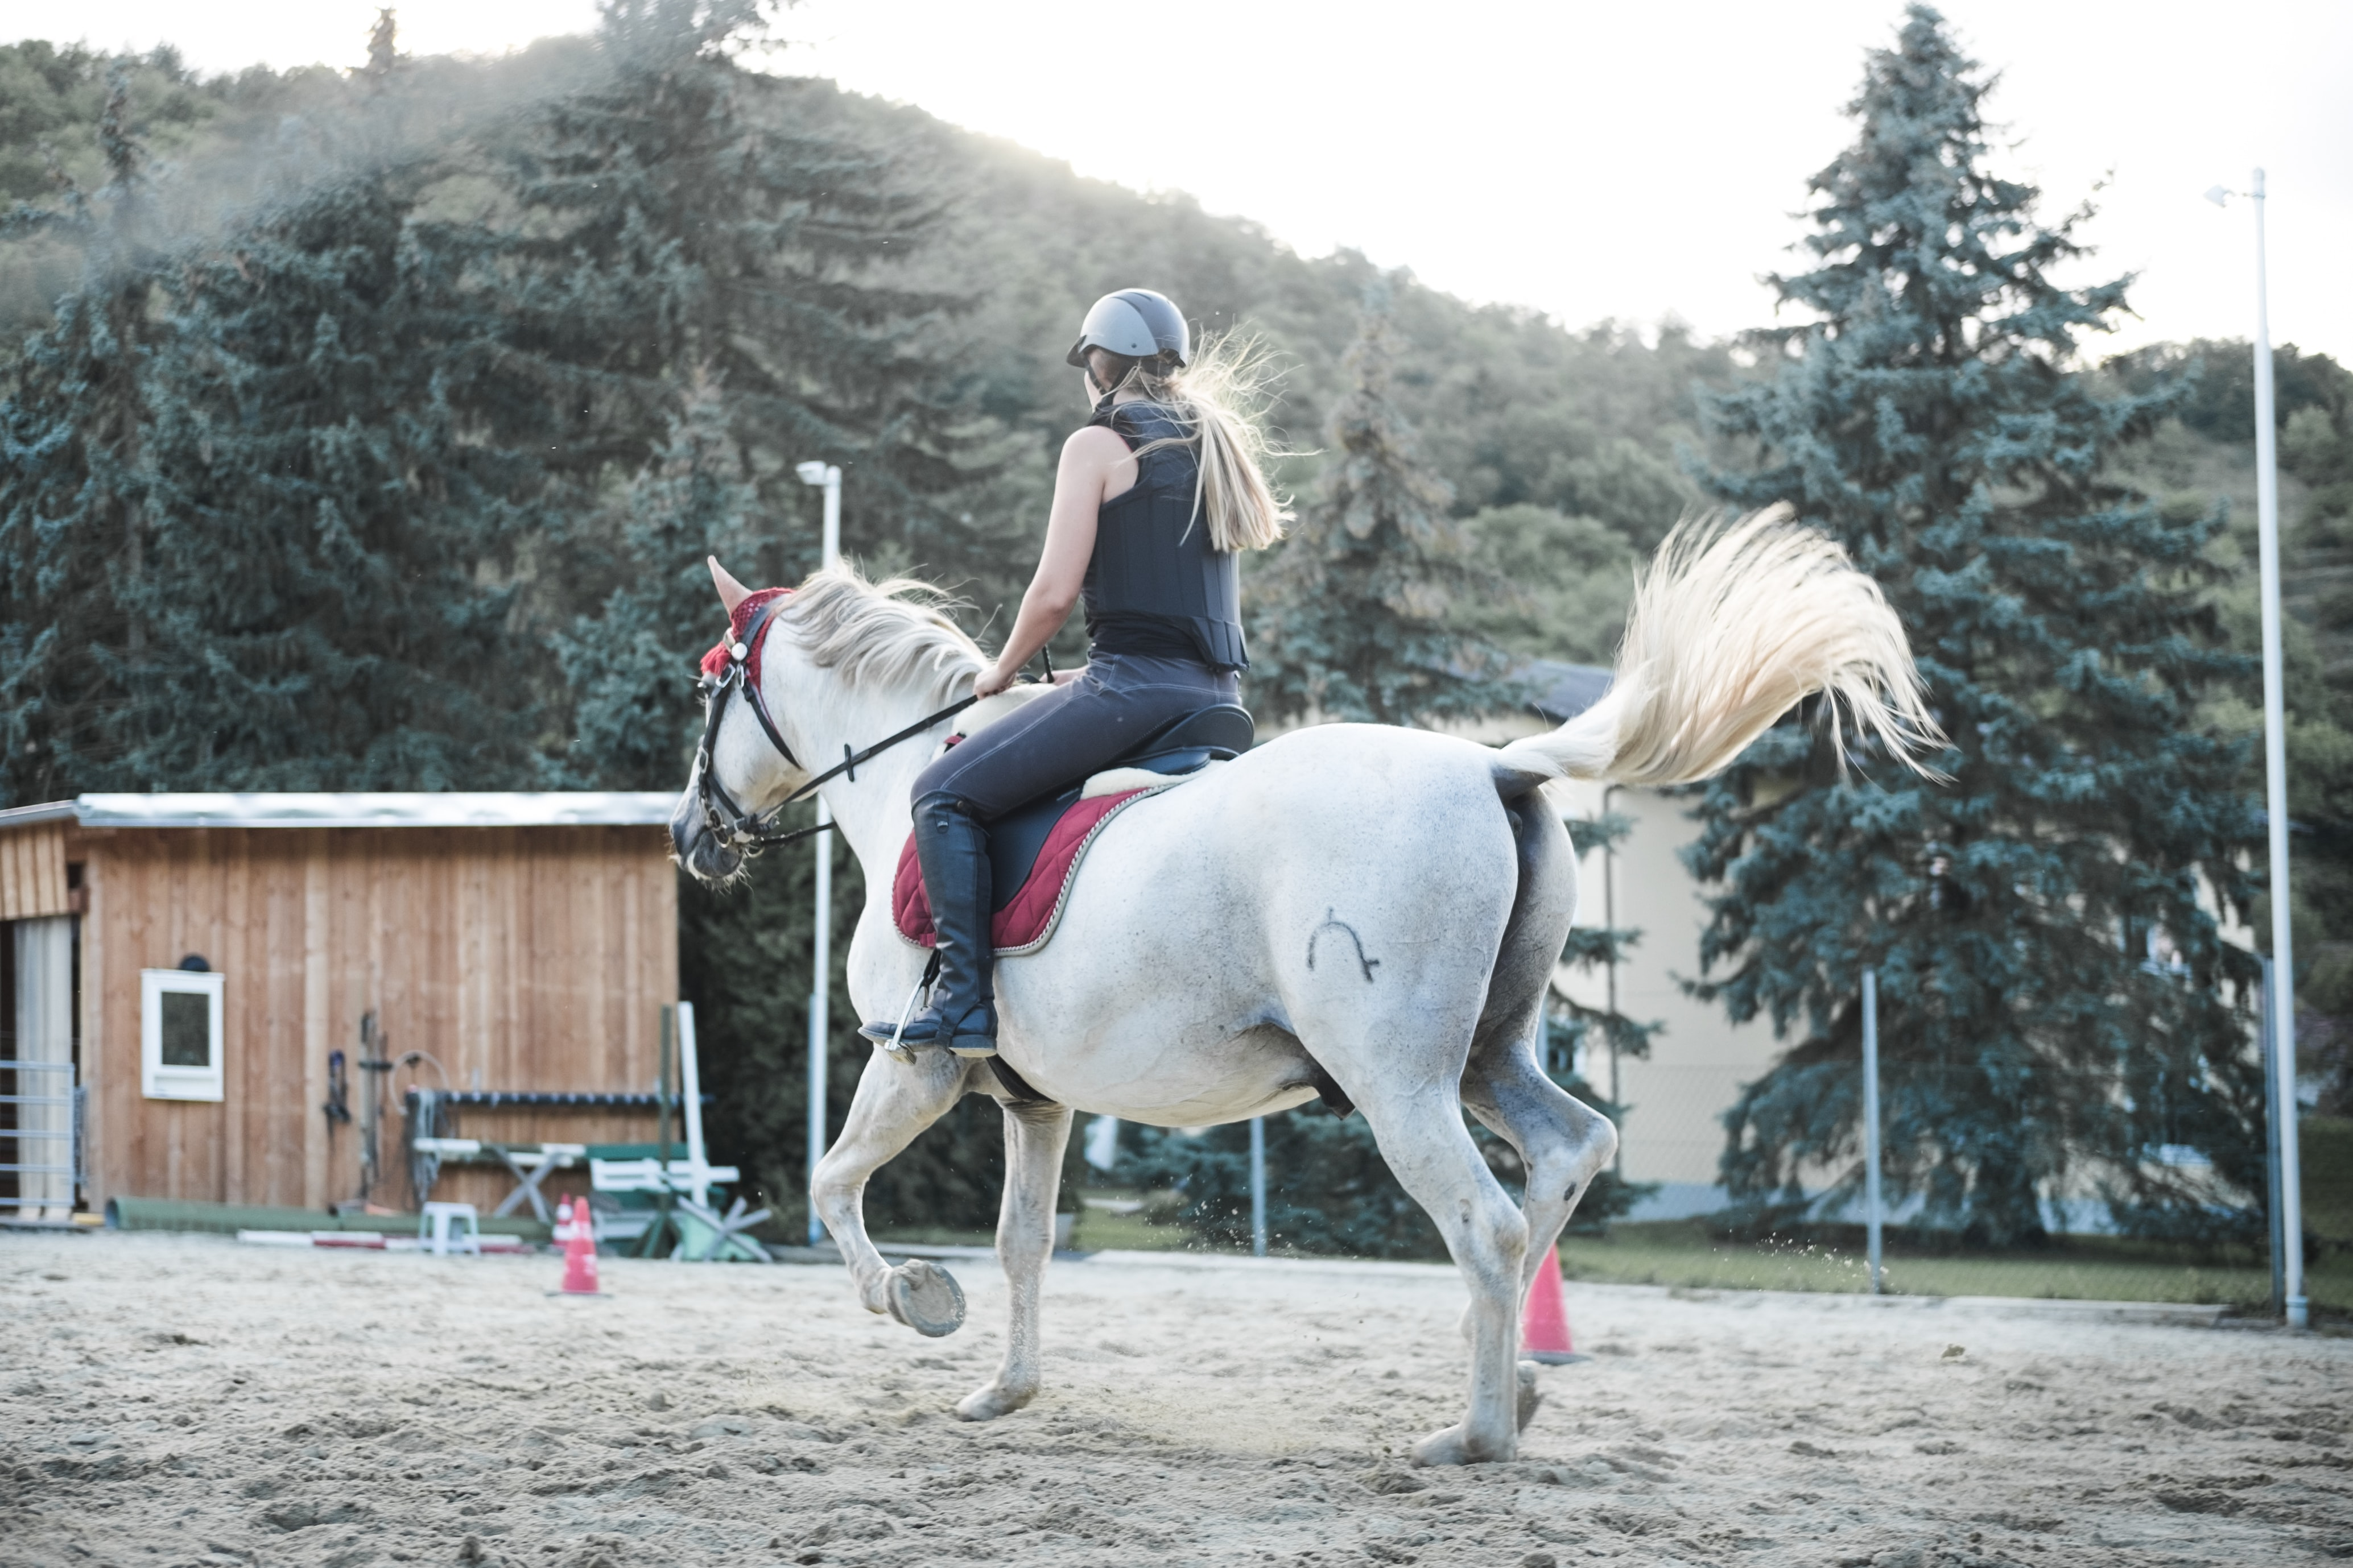 woman horseback riding beside trees and mountain in distance